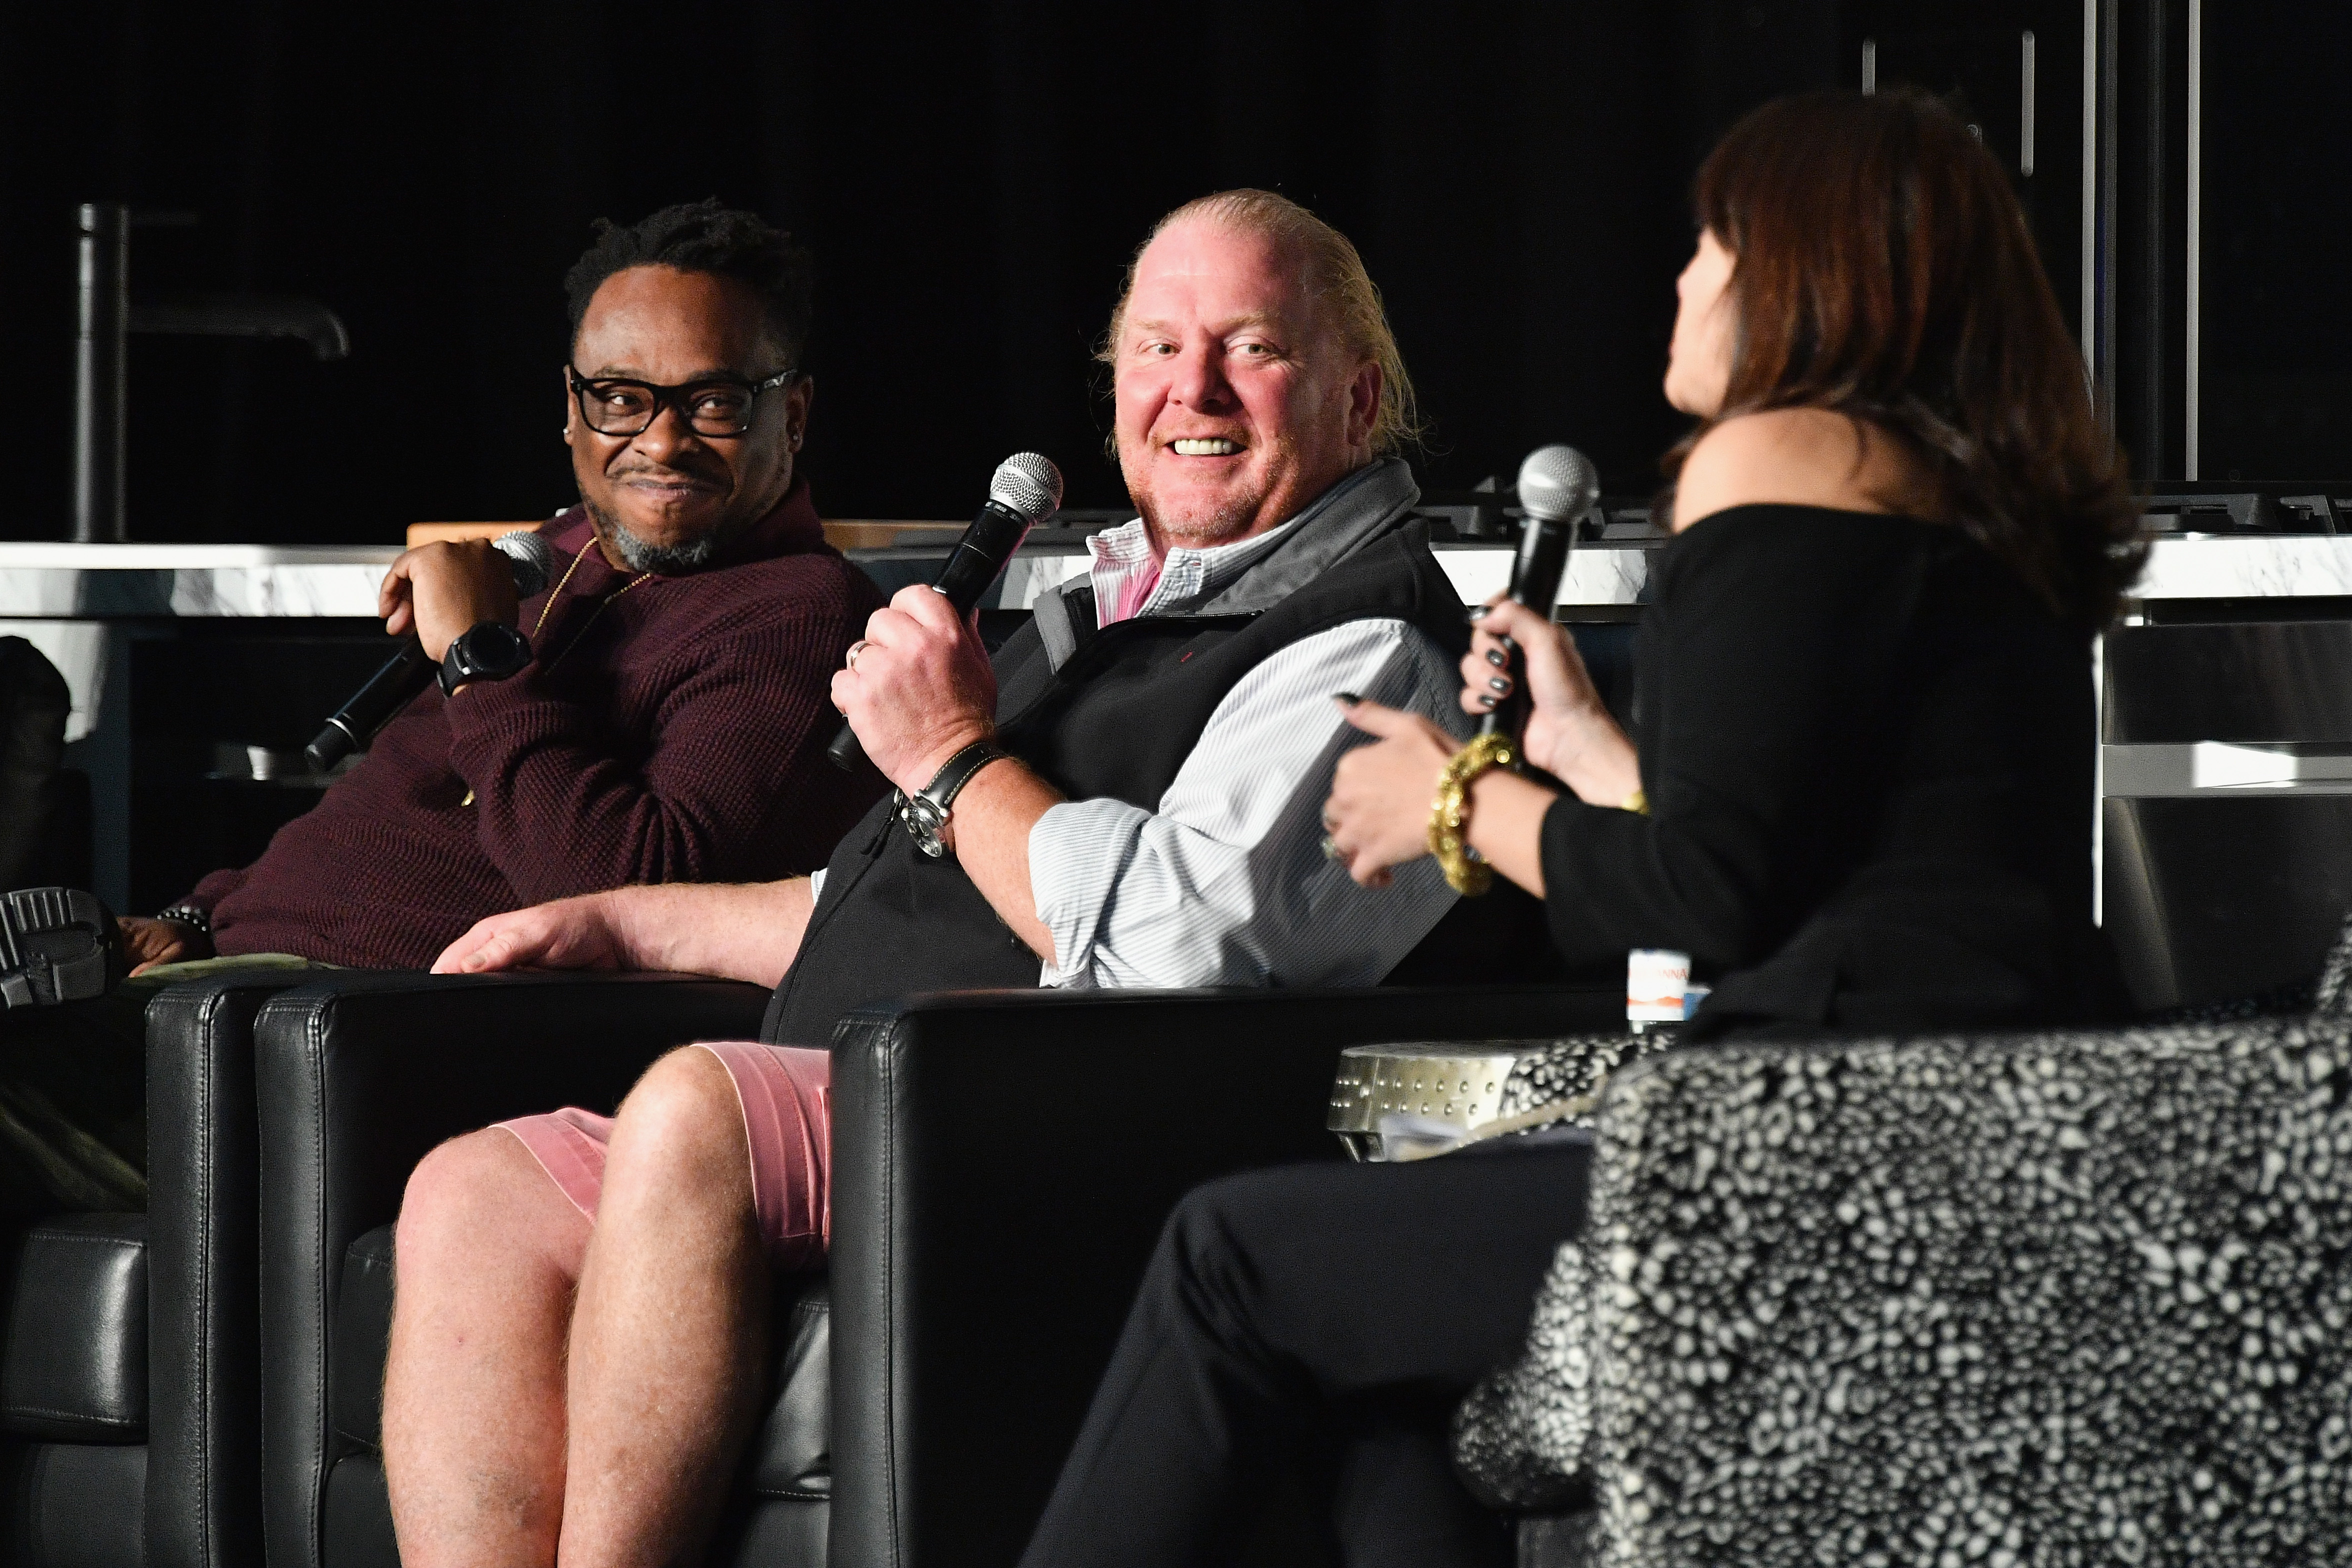 Mario Batali speaks on the Chefs are Rock Stars and Rock Stars are Chefs panel during the Food Network & Cooking Channel New York City Wine & Food Festival.